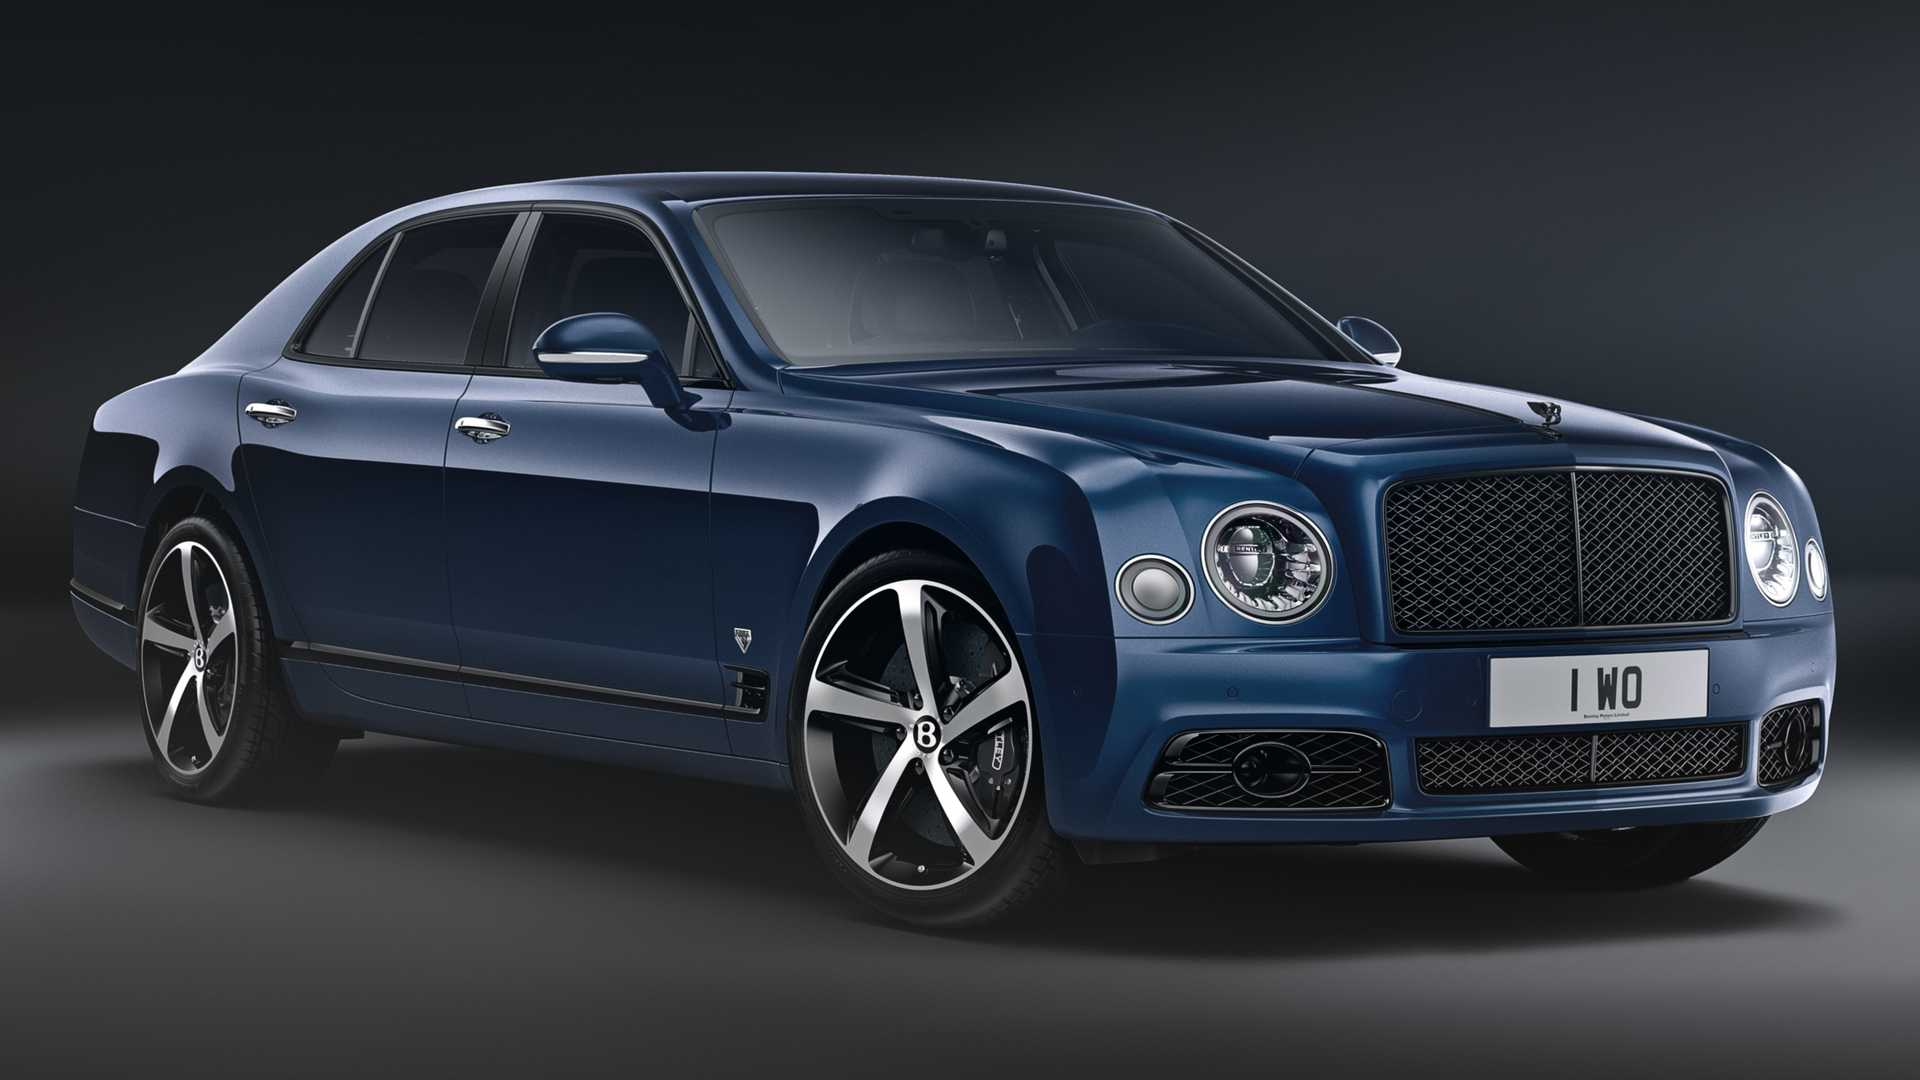 bentley-mulsanne-6-75-edition-by-mulliner-1